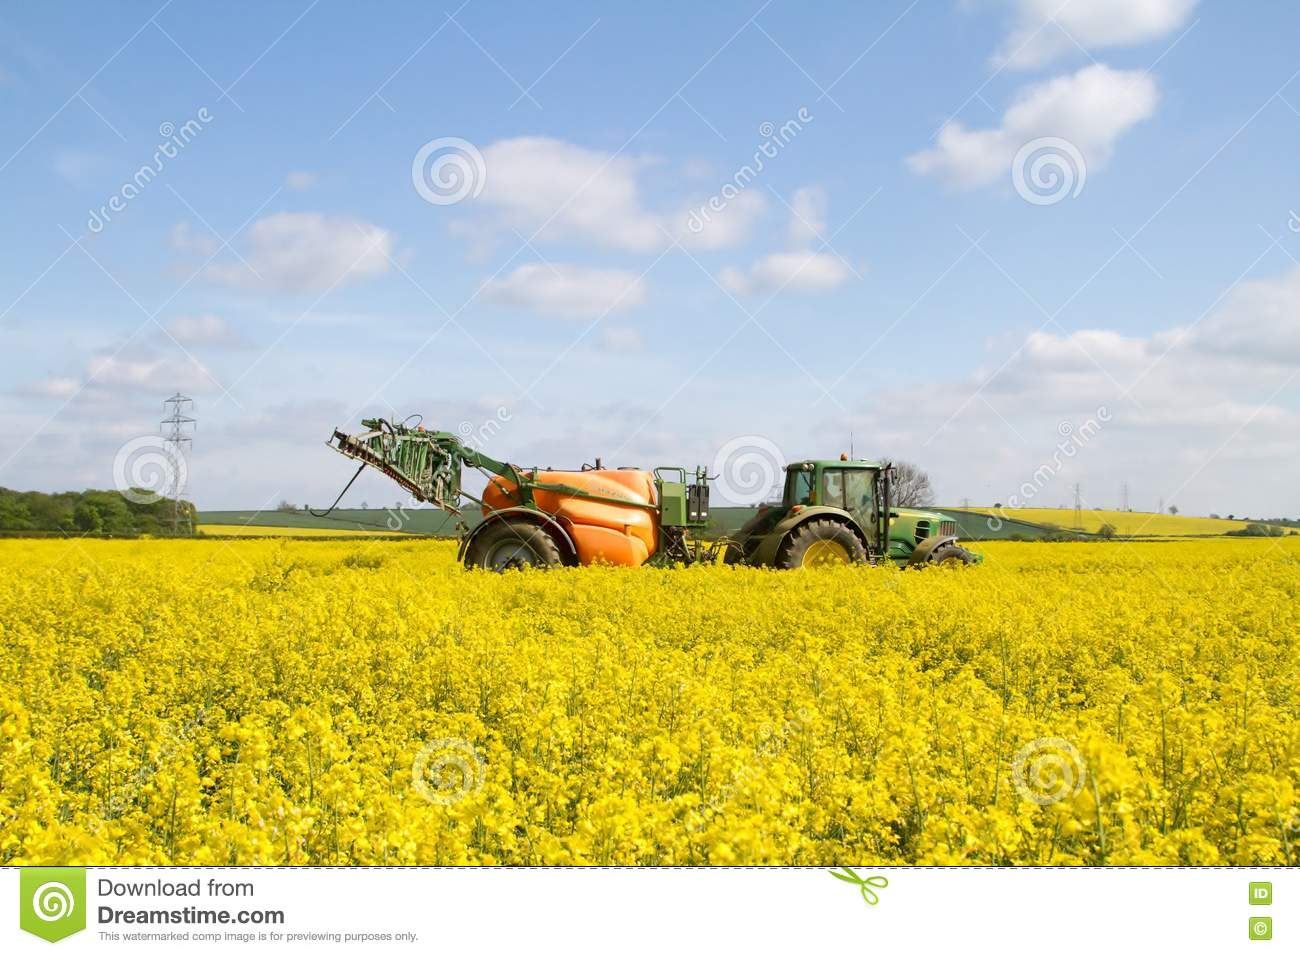 Green modern tractor pulling a crop sprayer editorial image image modern john deer tractor spraying oilseed in crop field yellow flowers blue sky with insecticide mightylinksfo